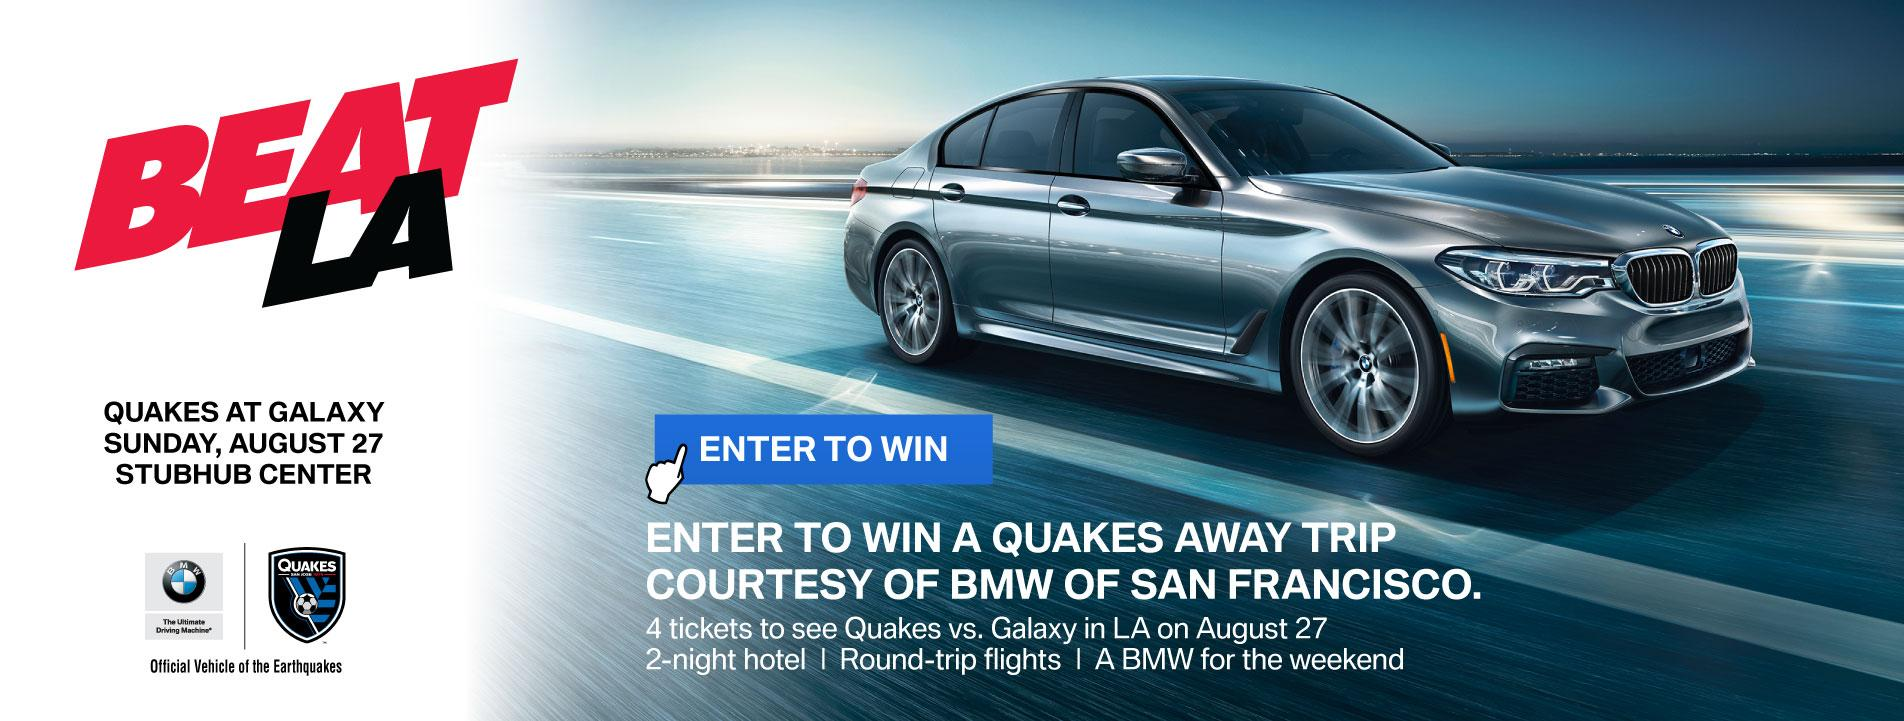 Enter to Win a Quakes Trip